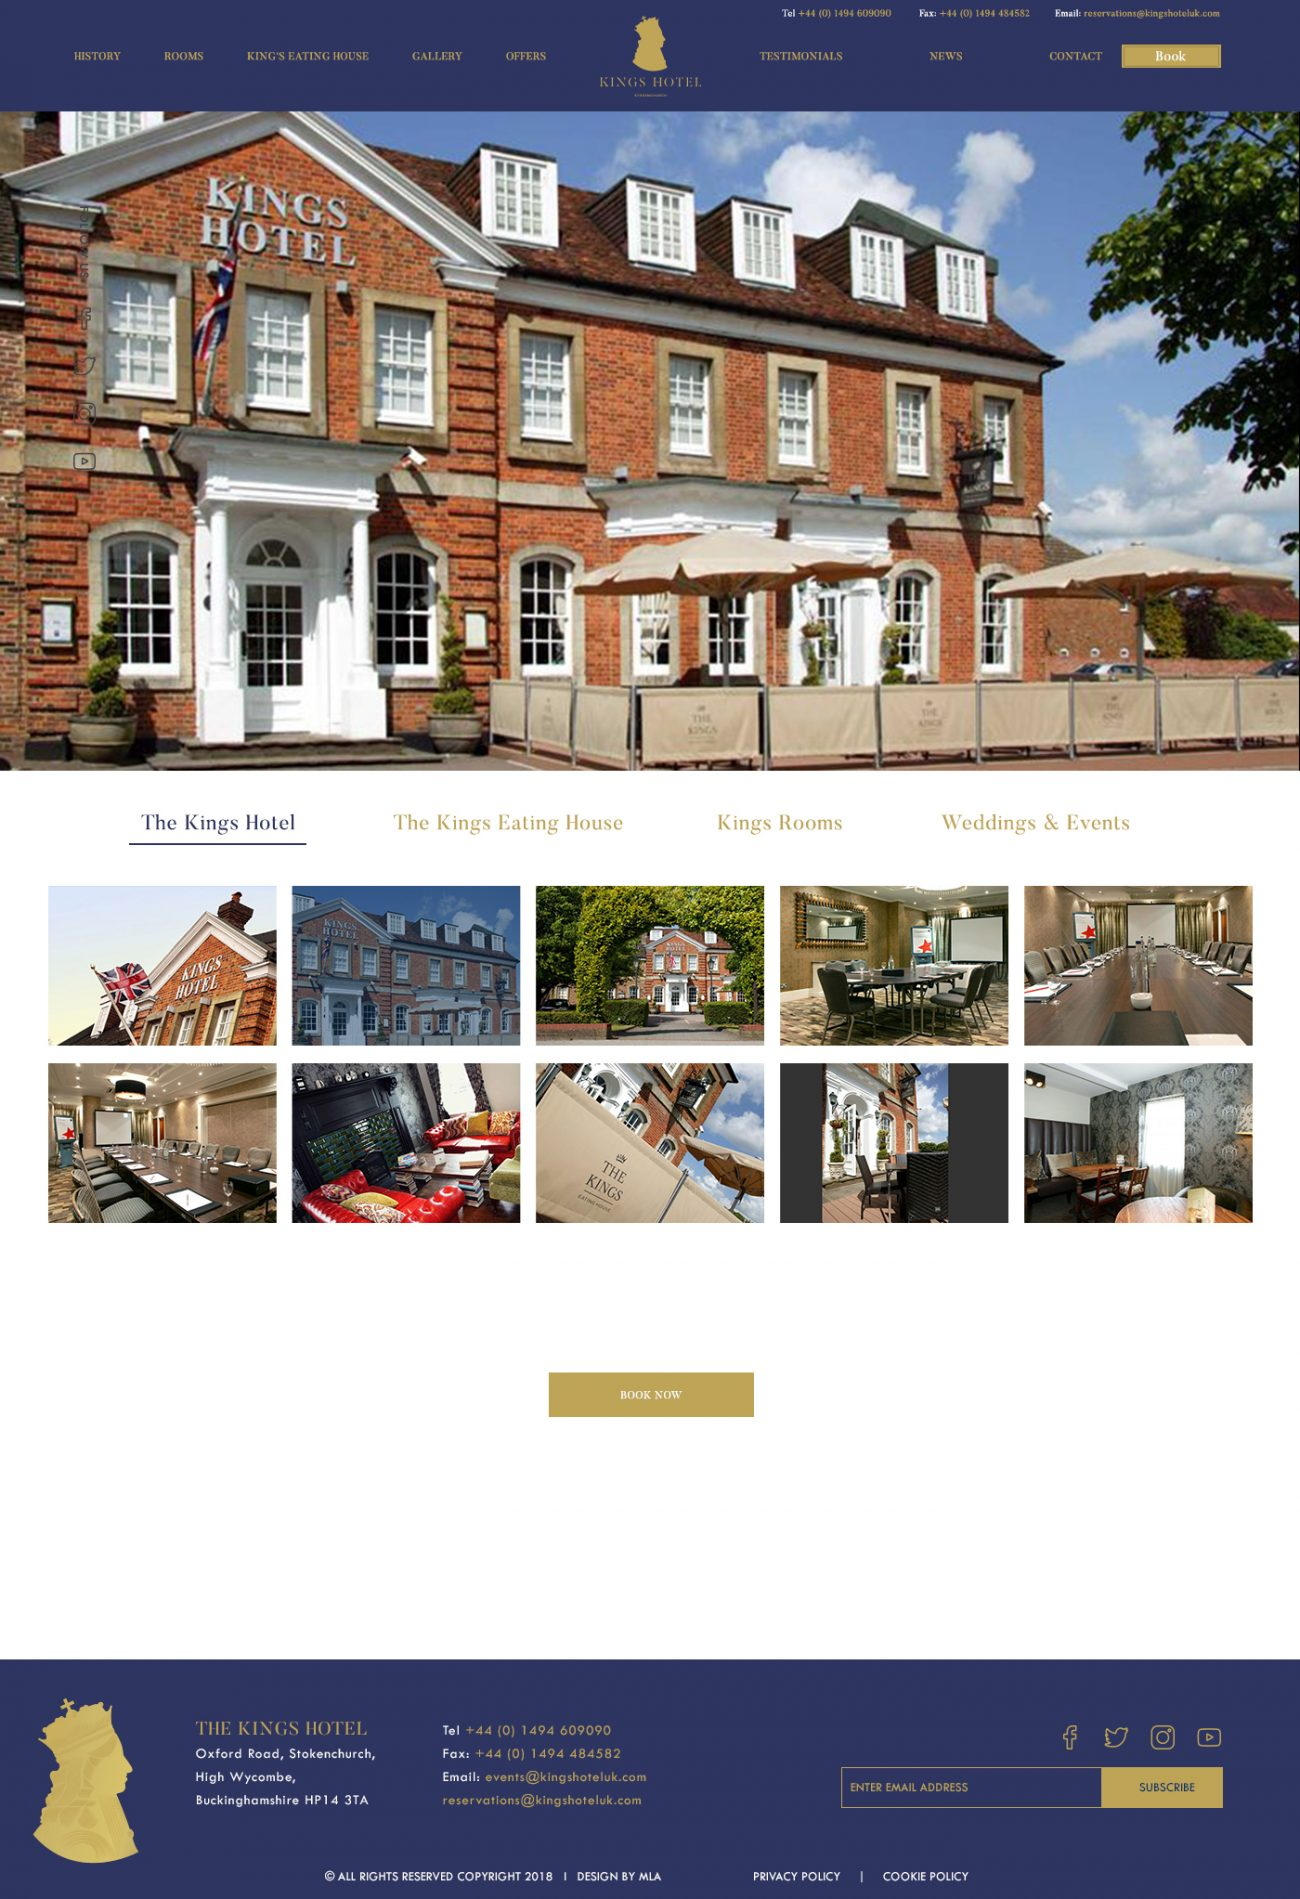 The Kings Hotel gallery page- Web design London - web design agency london